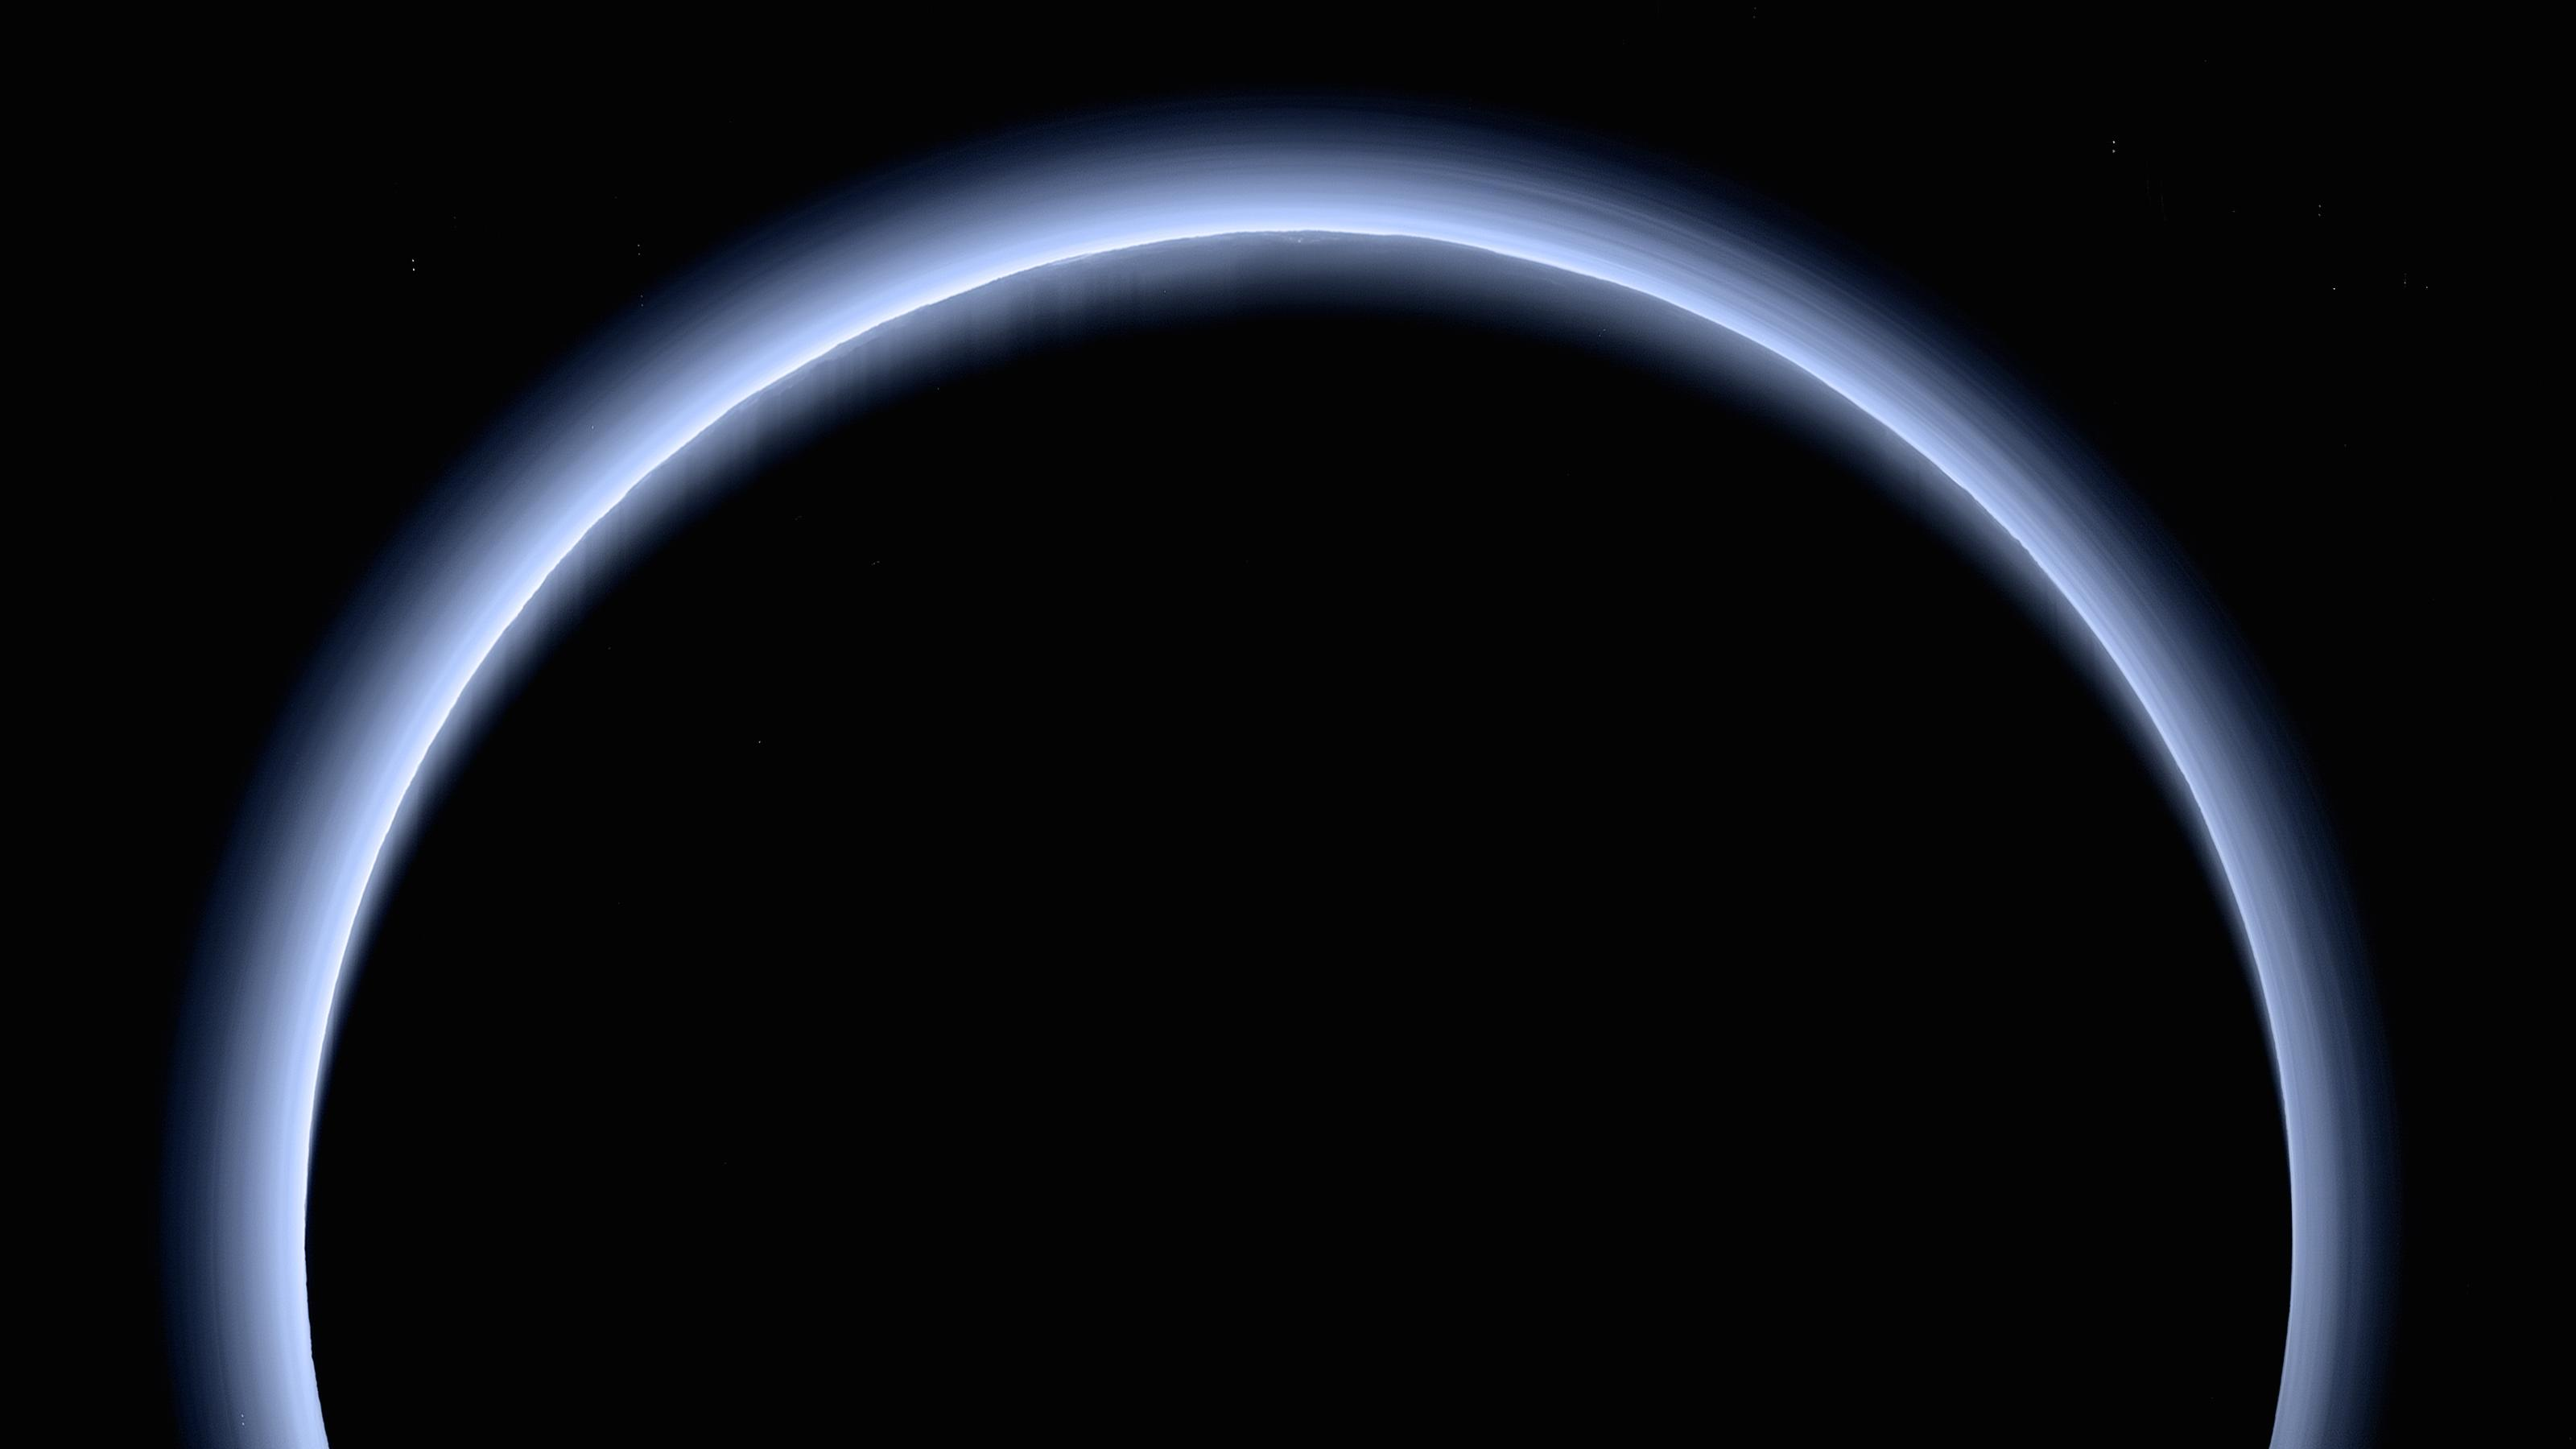 This is the highest-resolution color departure shot of Pluto's receding crescent from NASA's New Horizons spacecraft, taken when the spacecraft was 120,000 miles (200,000 kilometers) away from Pluto.